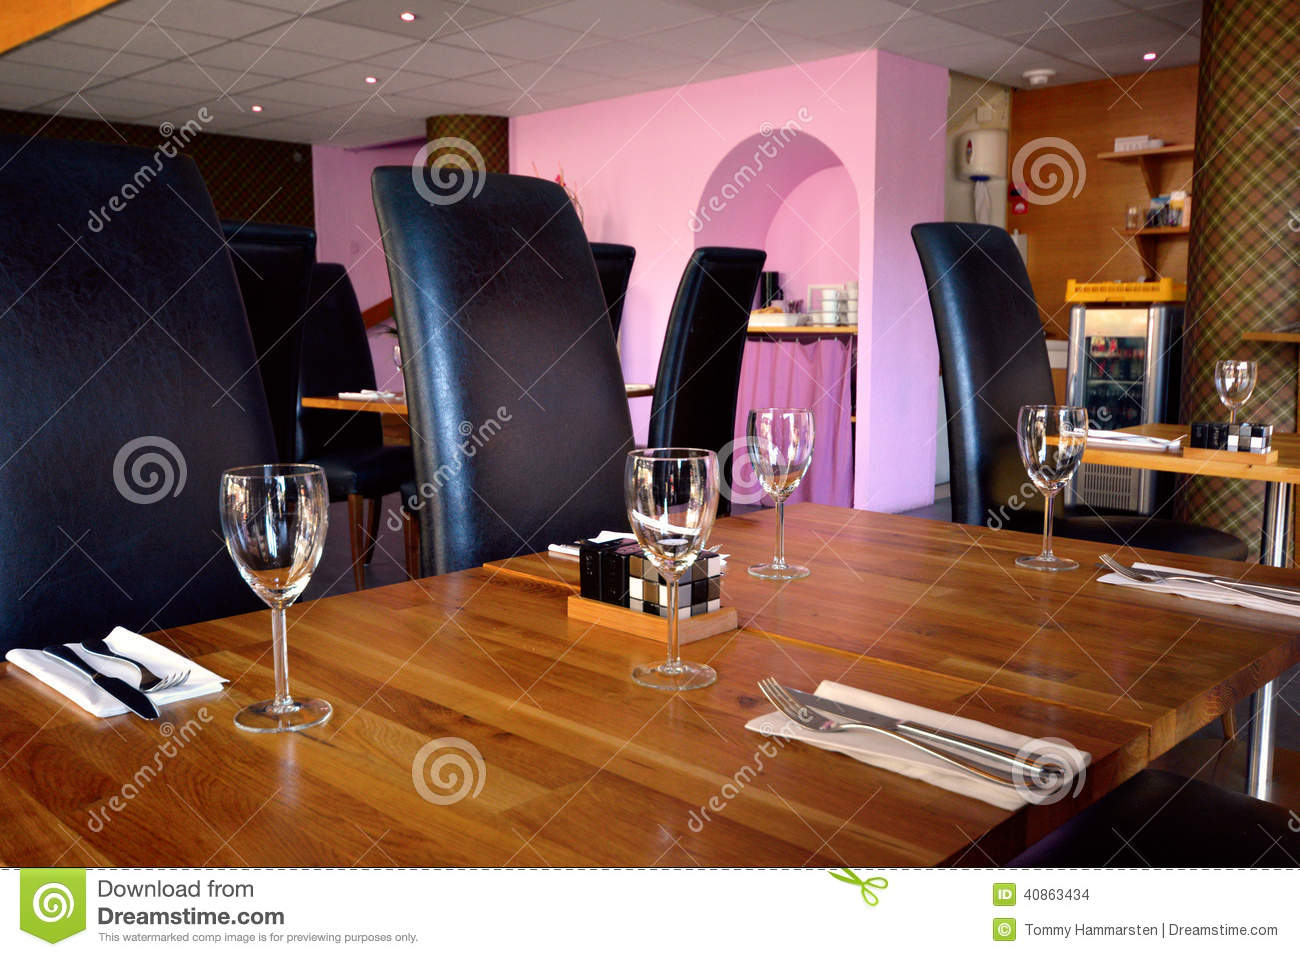 Wineglass on table